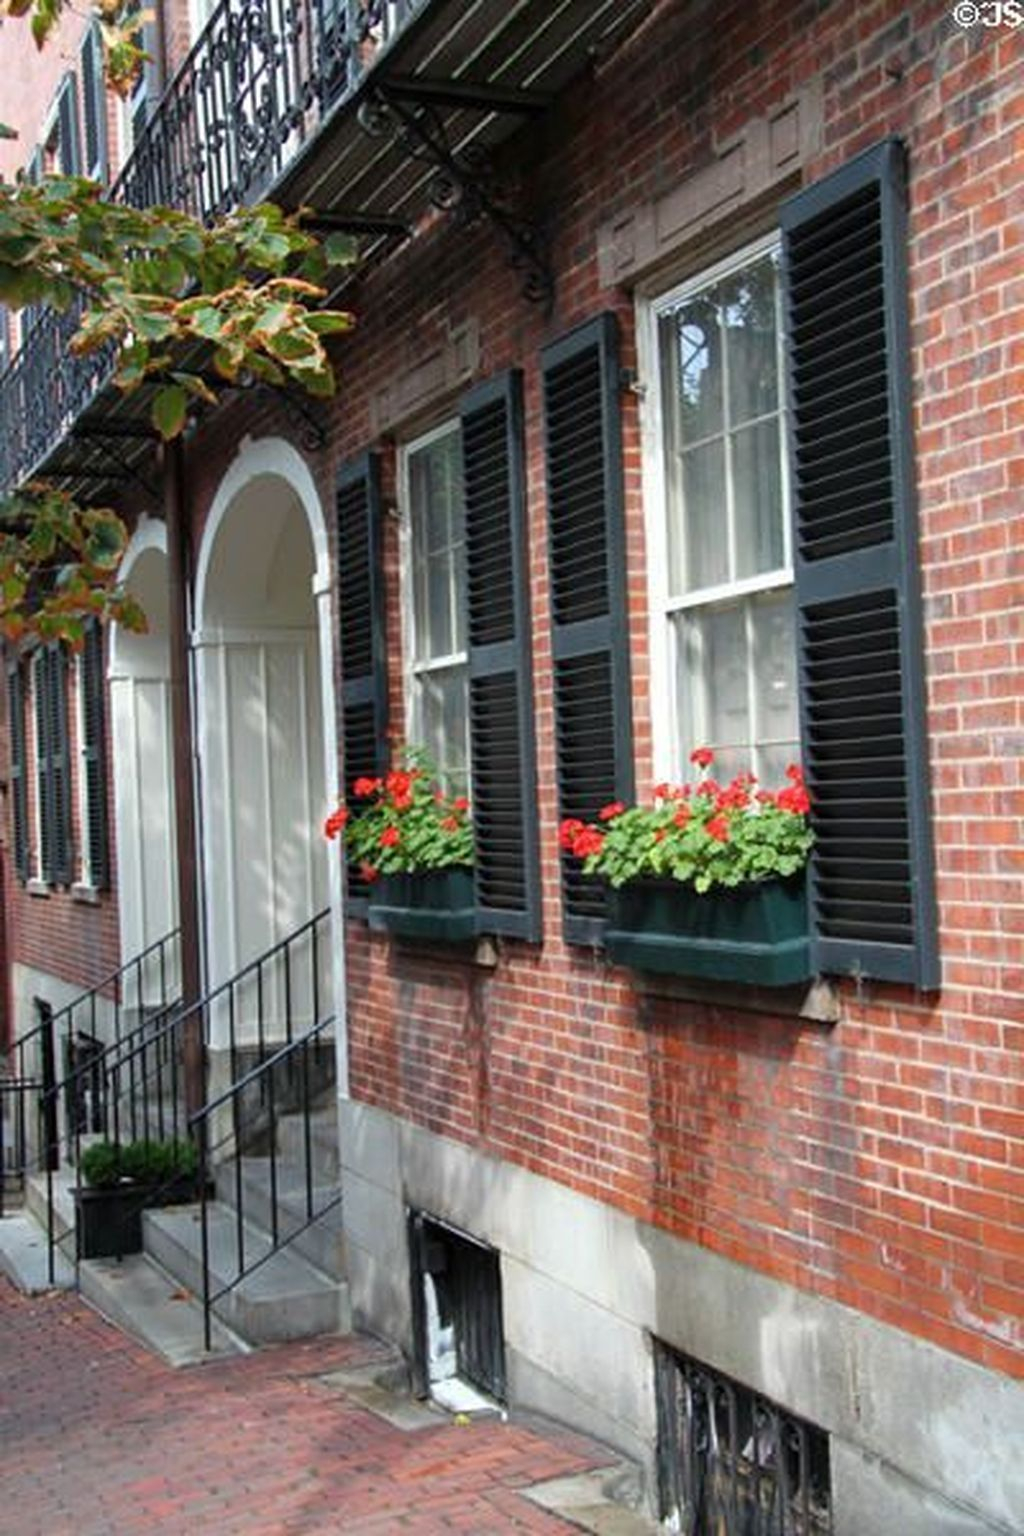 Fabulous Exterior Decoration Ideas With Flower In Window 24